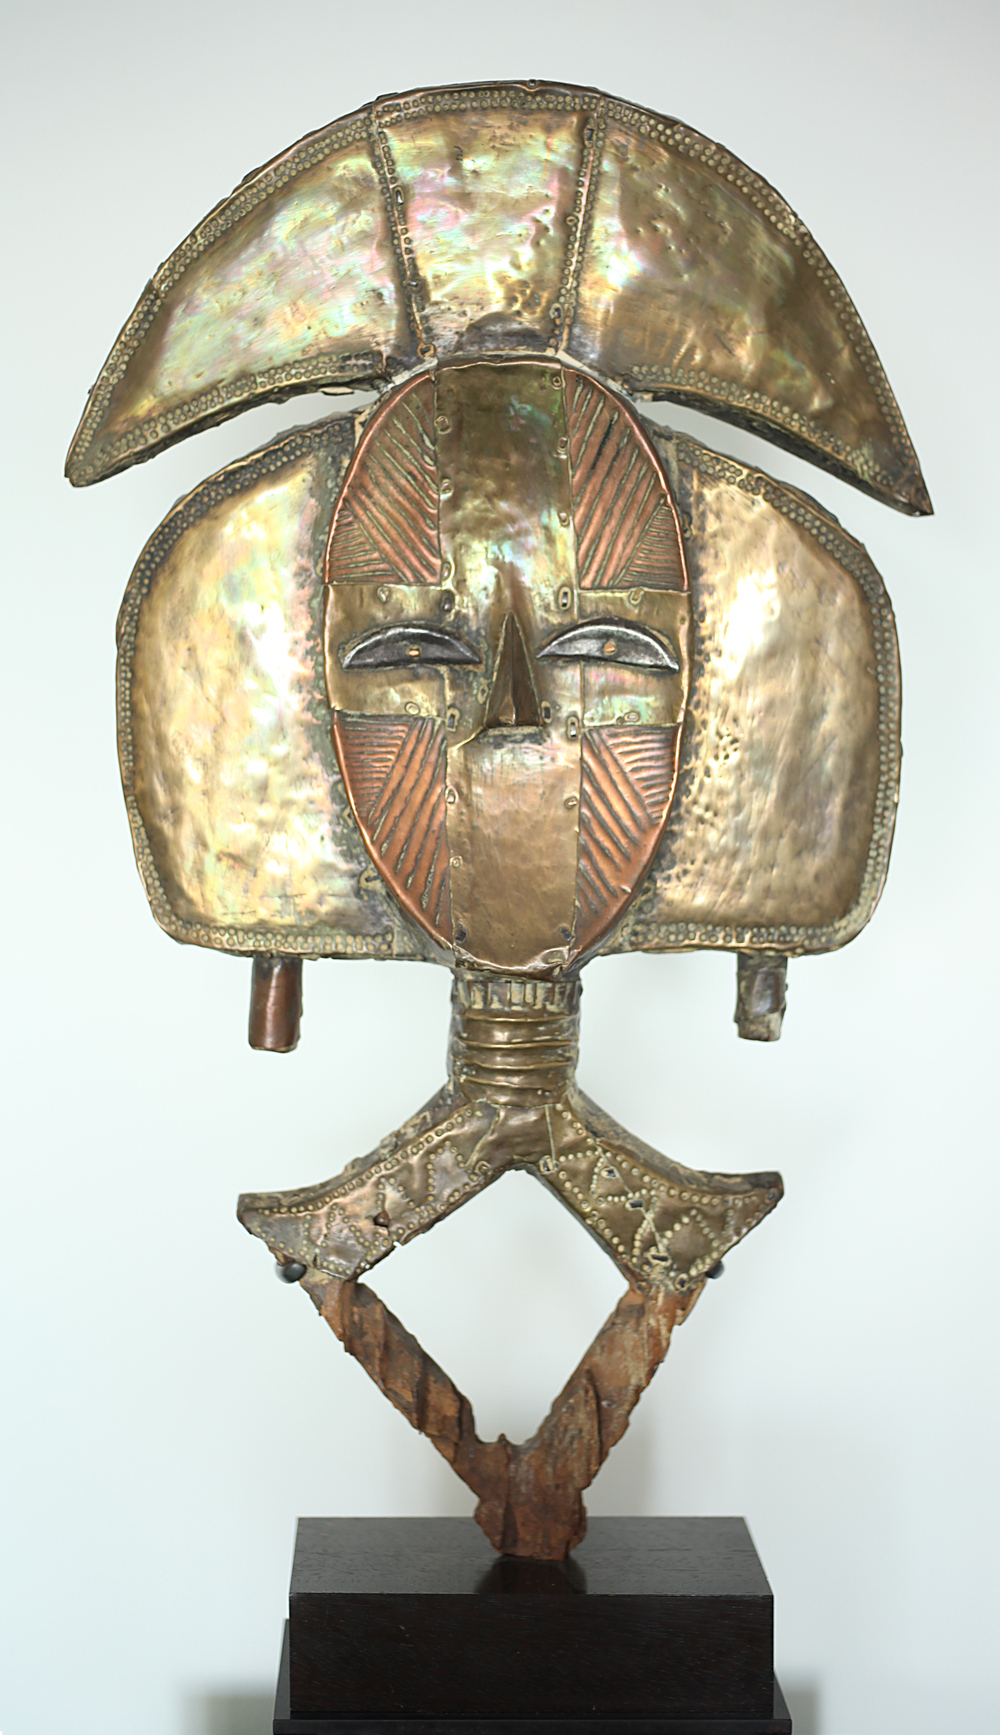 1. Kota Obamba Reliquary Figure Gabon, wood with hammered metals, 22 inches high, ca. 1800 century_frontal.jpg